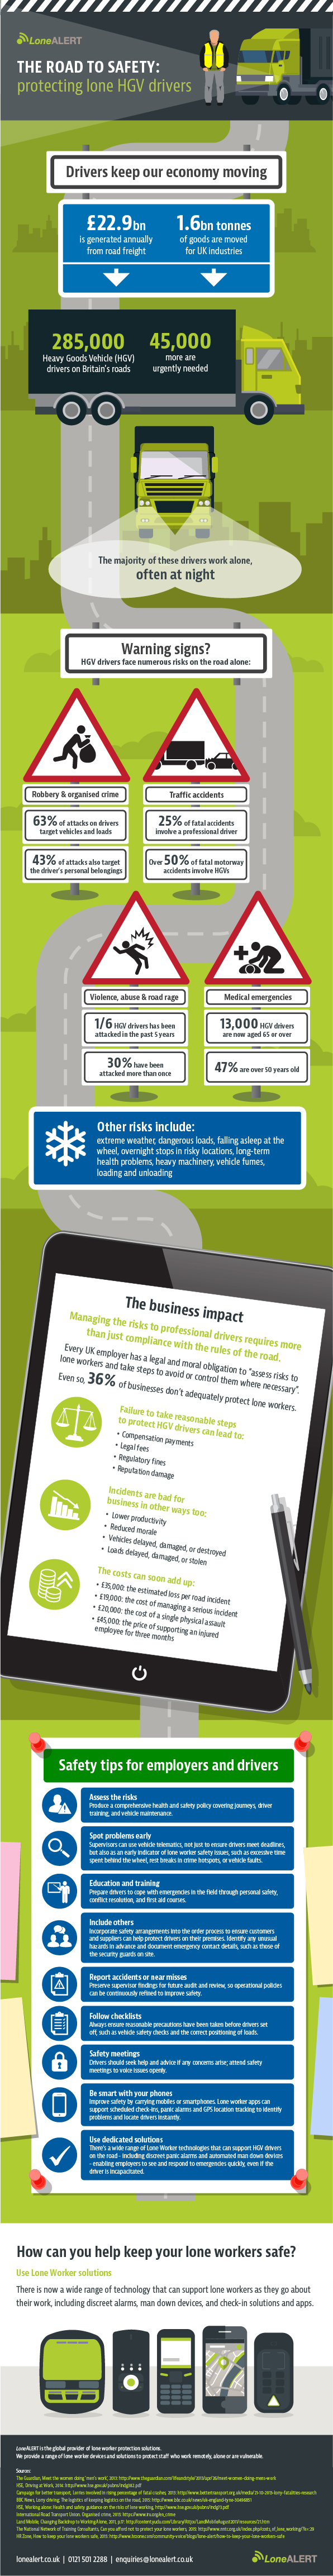 Lone Worker Protection from LONEALERT - The HGV drivers guide to lone working safety - Infographic